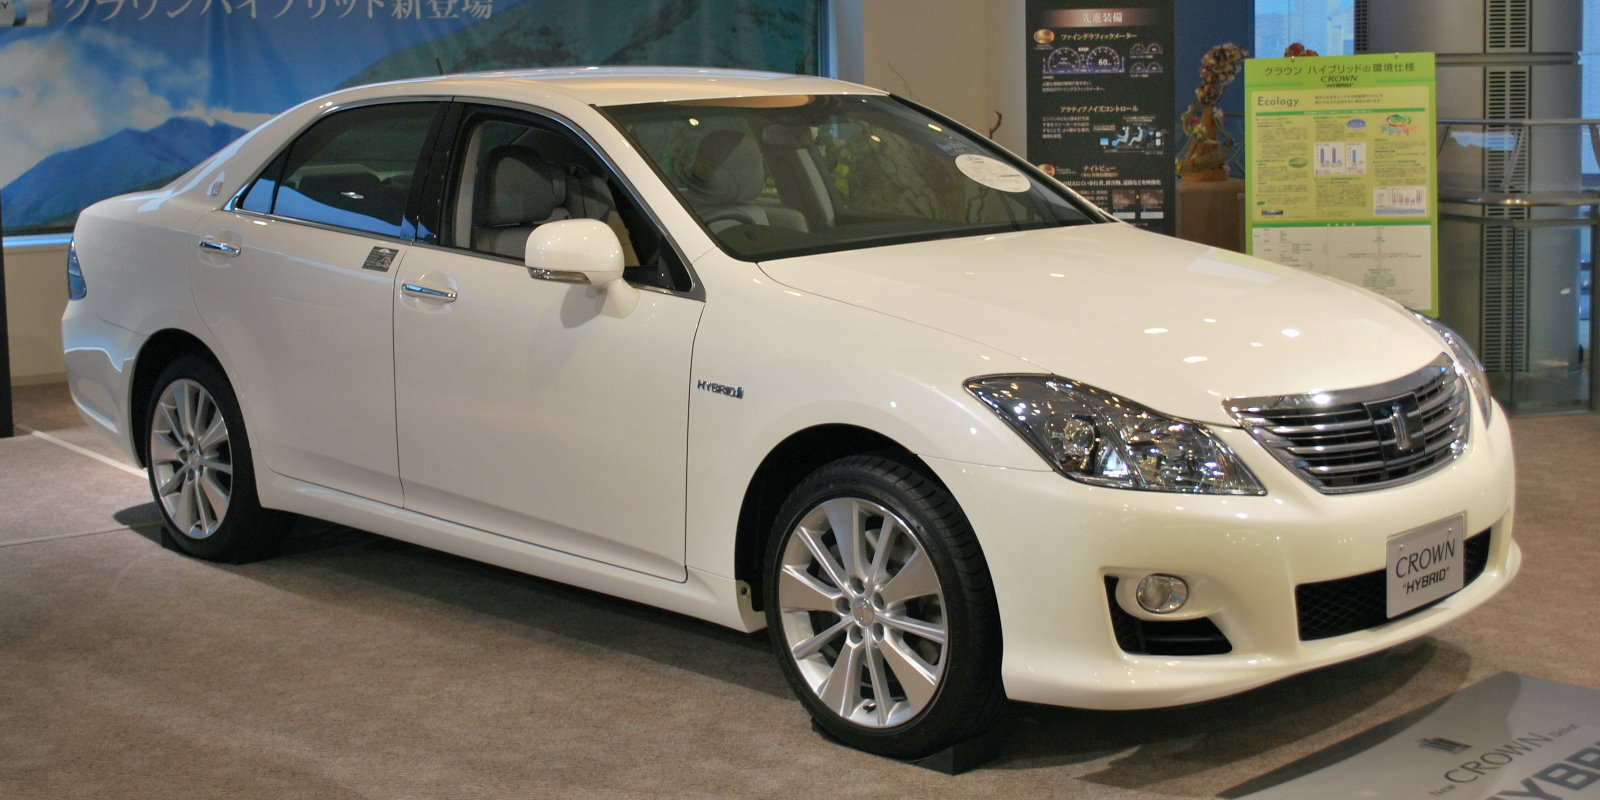 2011 toyota crown hybrid - photo #36